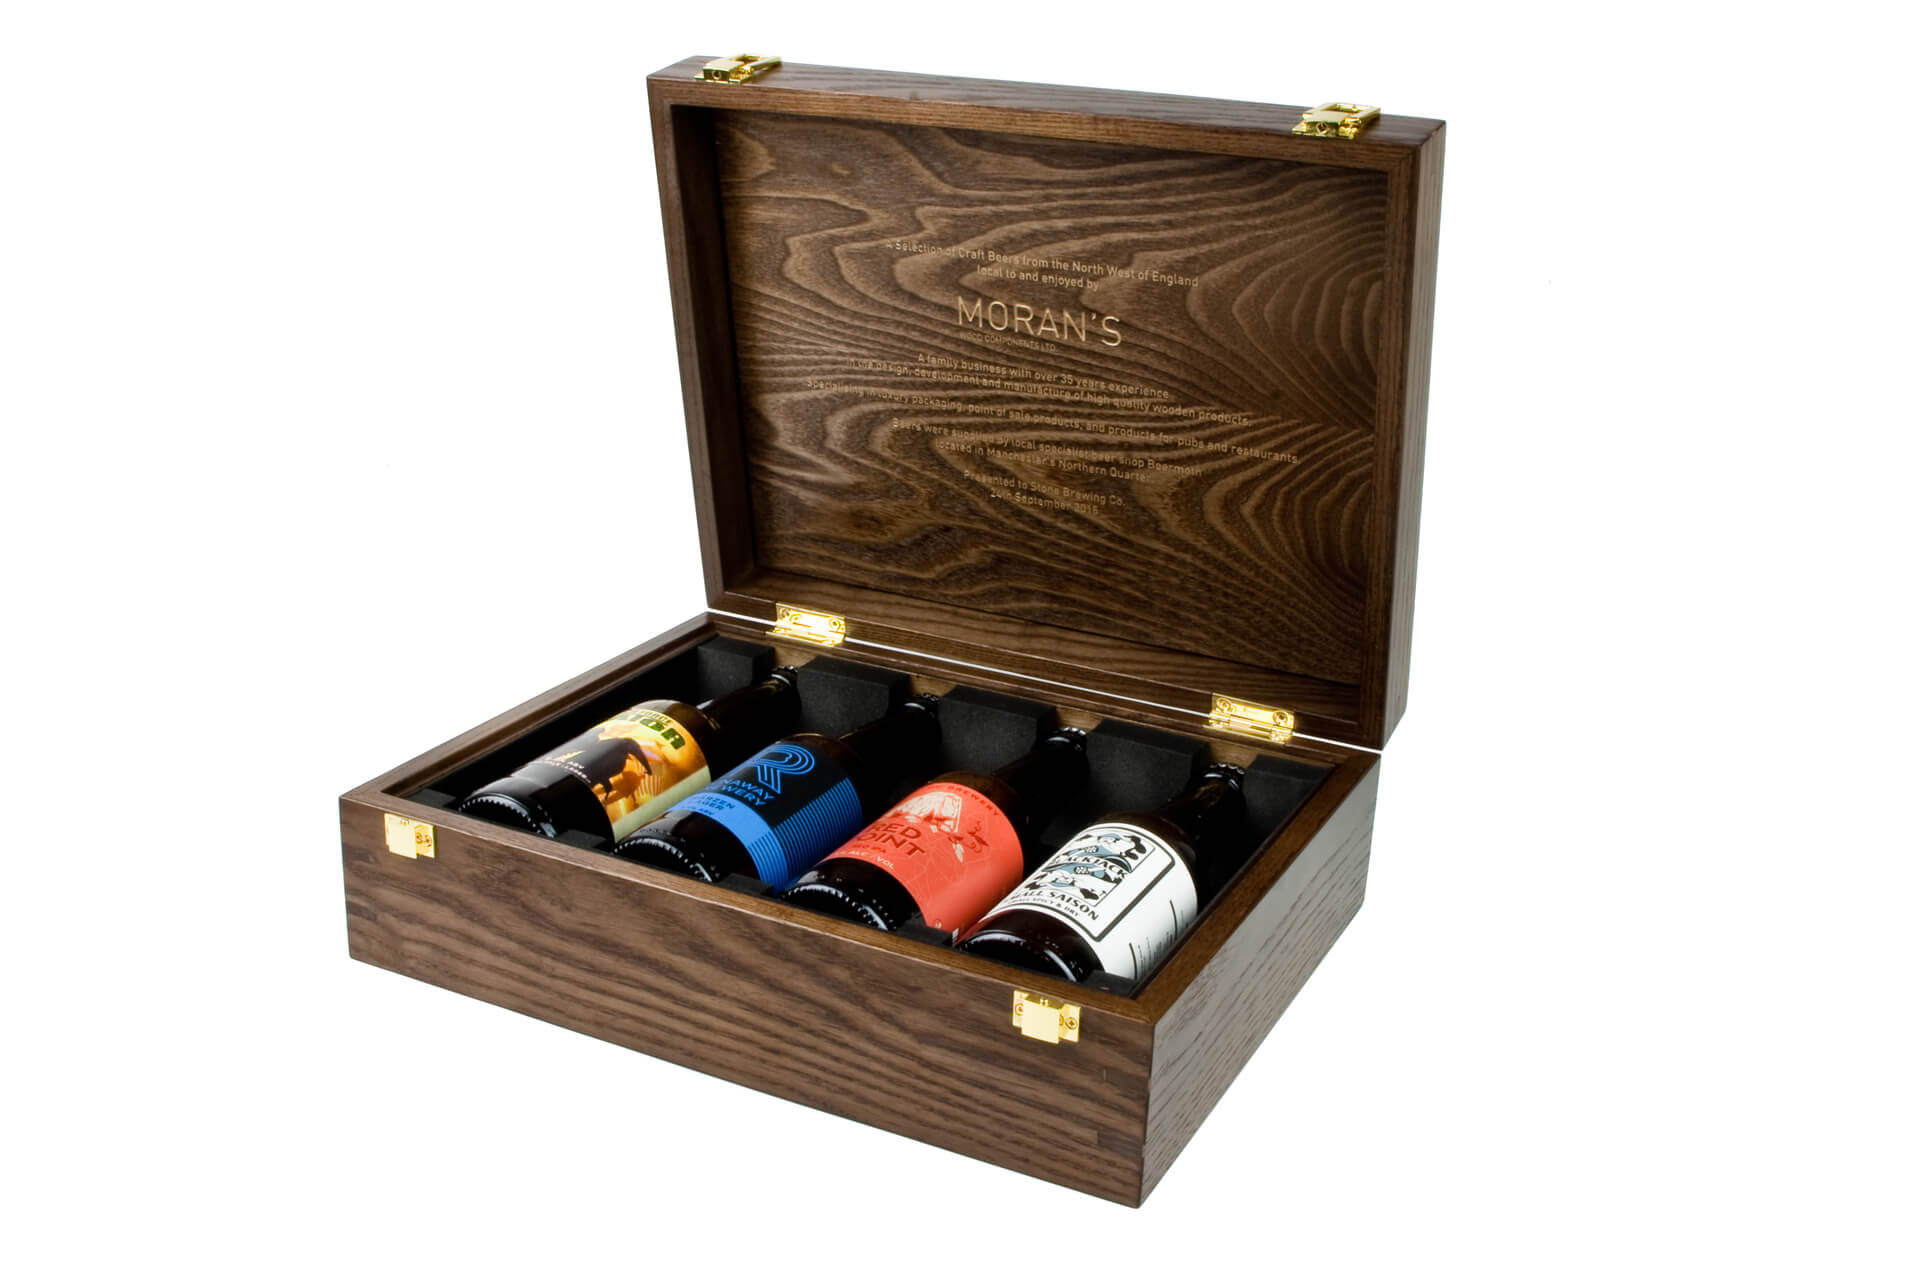 promotional wood boxes supply and manufacture uk